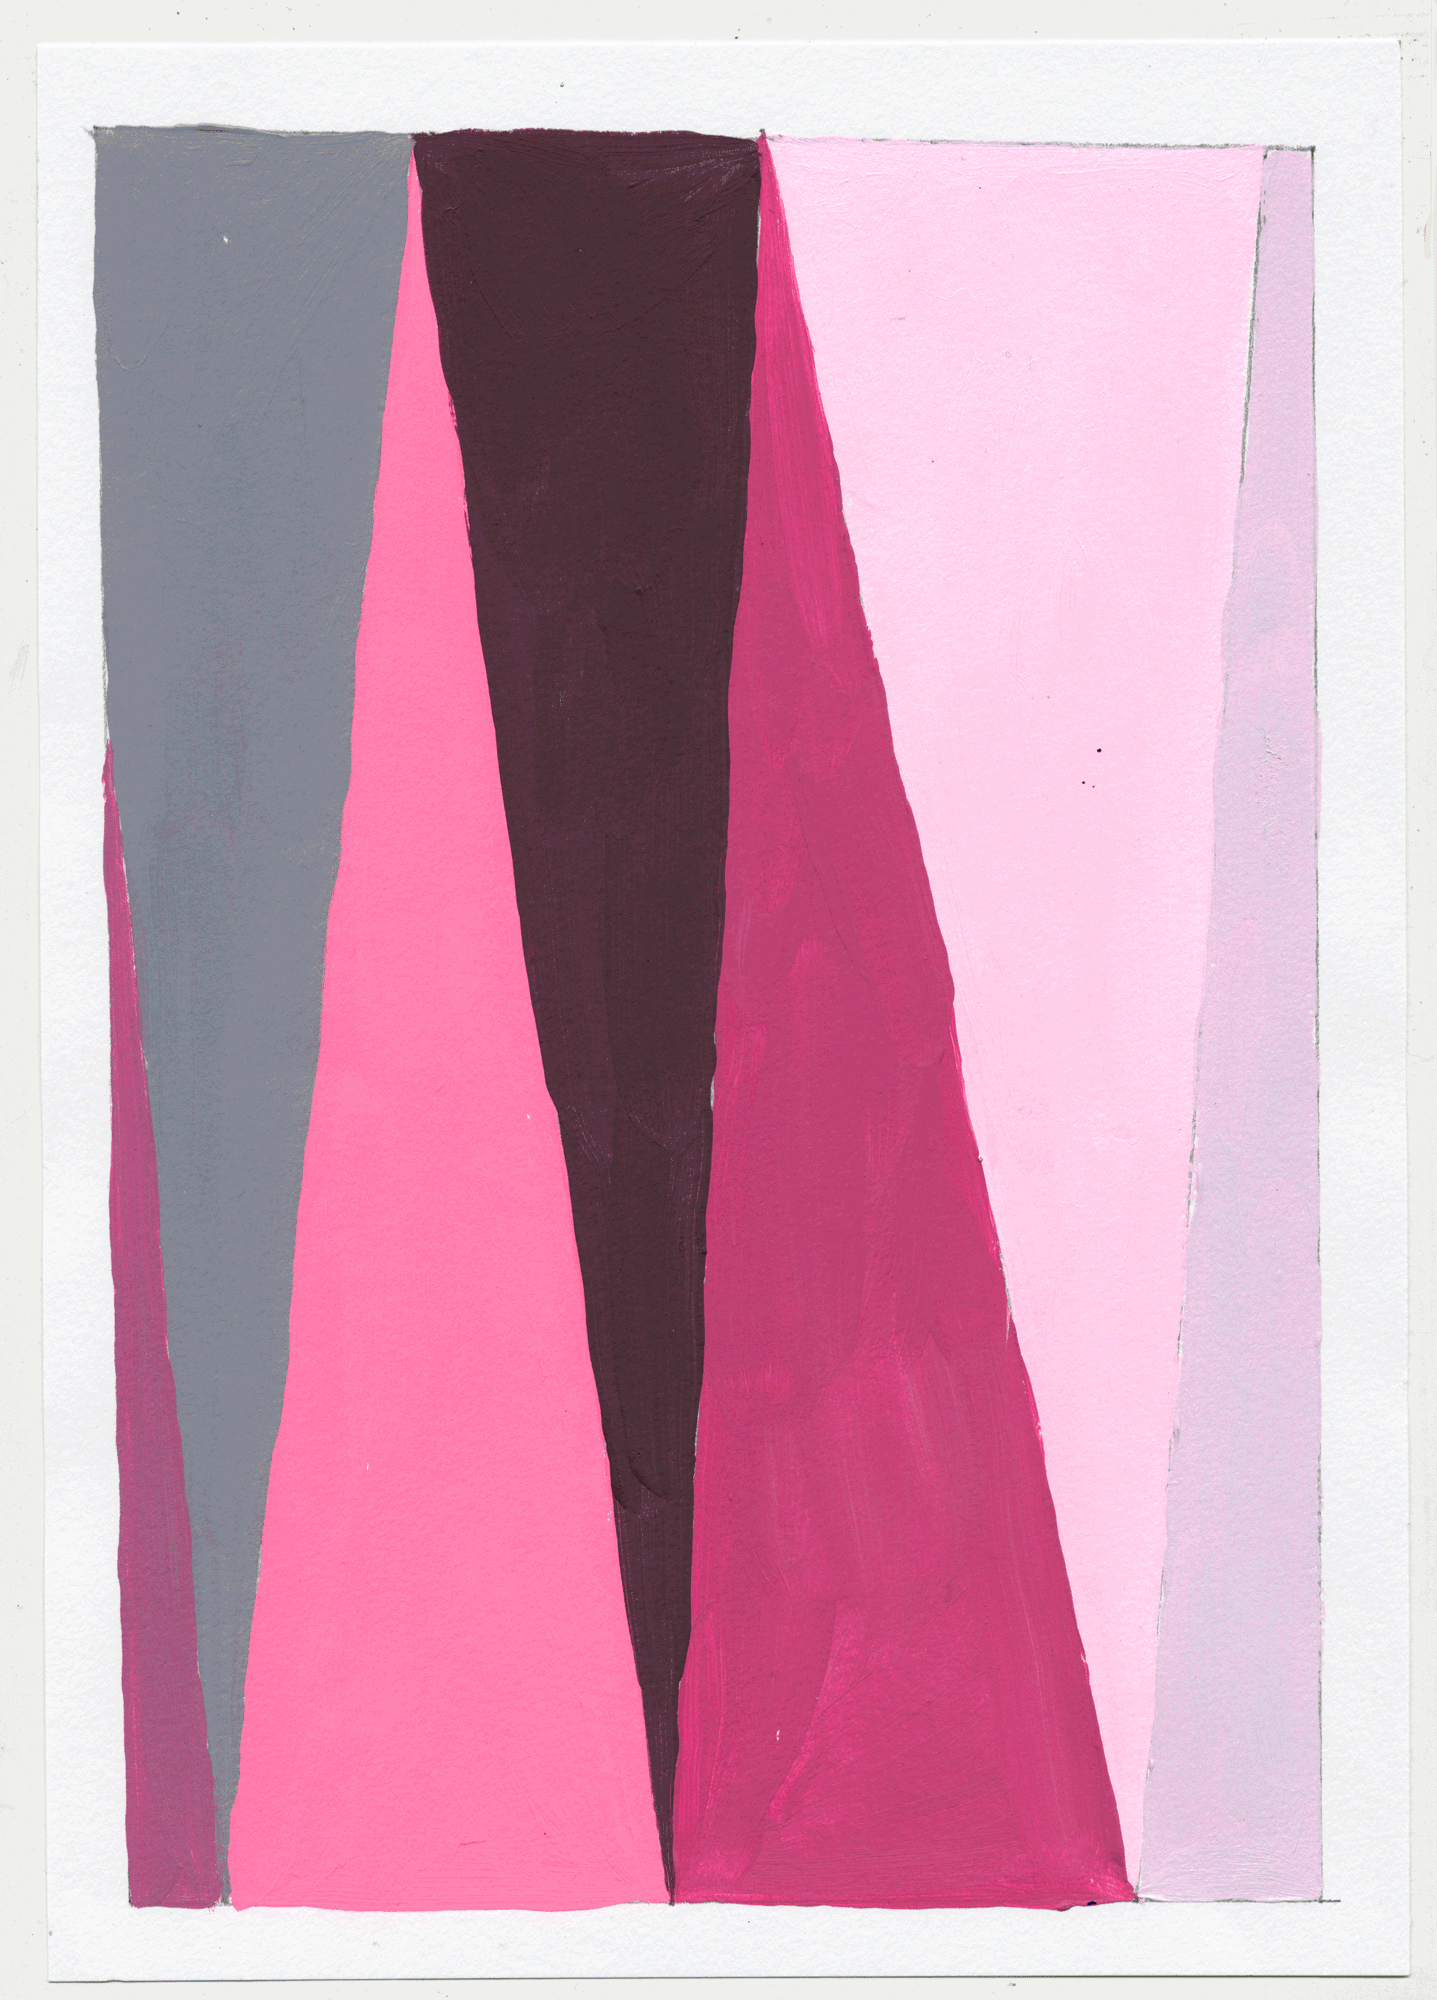 "NY17#30 10"" X 7"", acrylic on paper, 2017  available at Etsy   again with color studies! 3 sets of 3. using a primary color & its' complement to create subtle variations & muted colors."